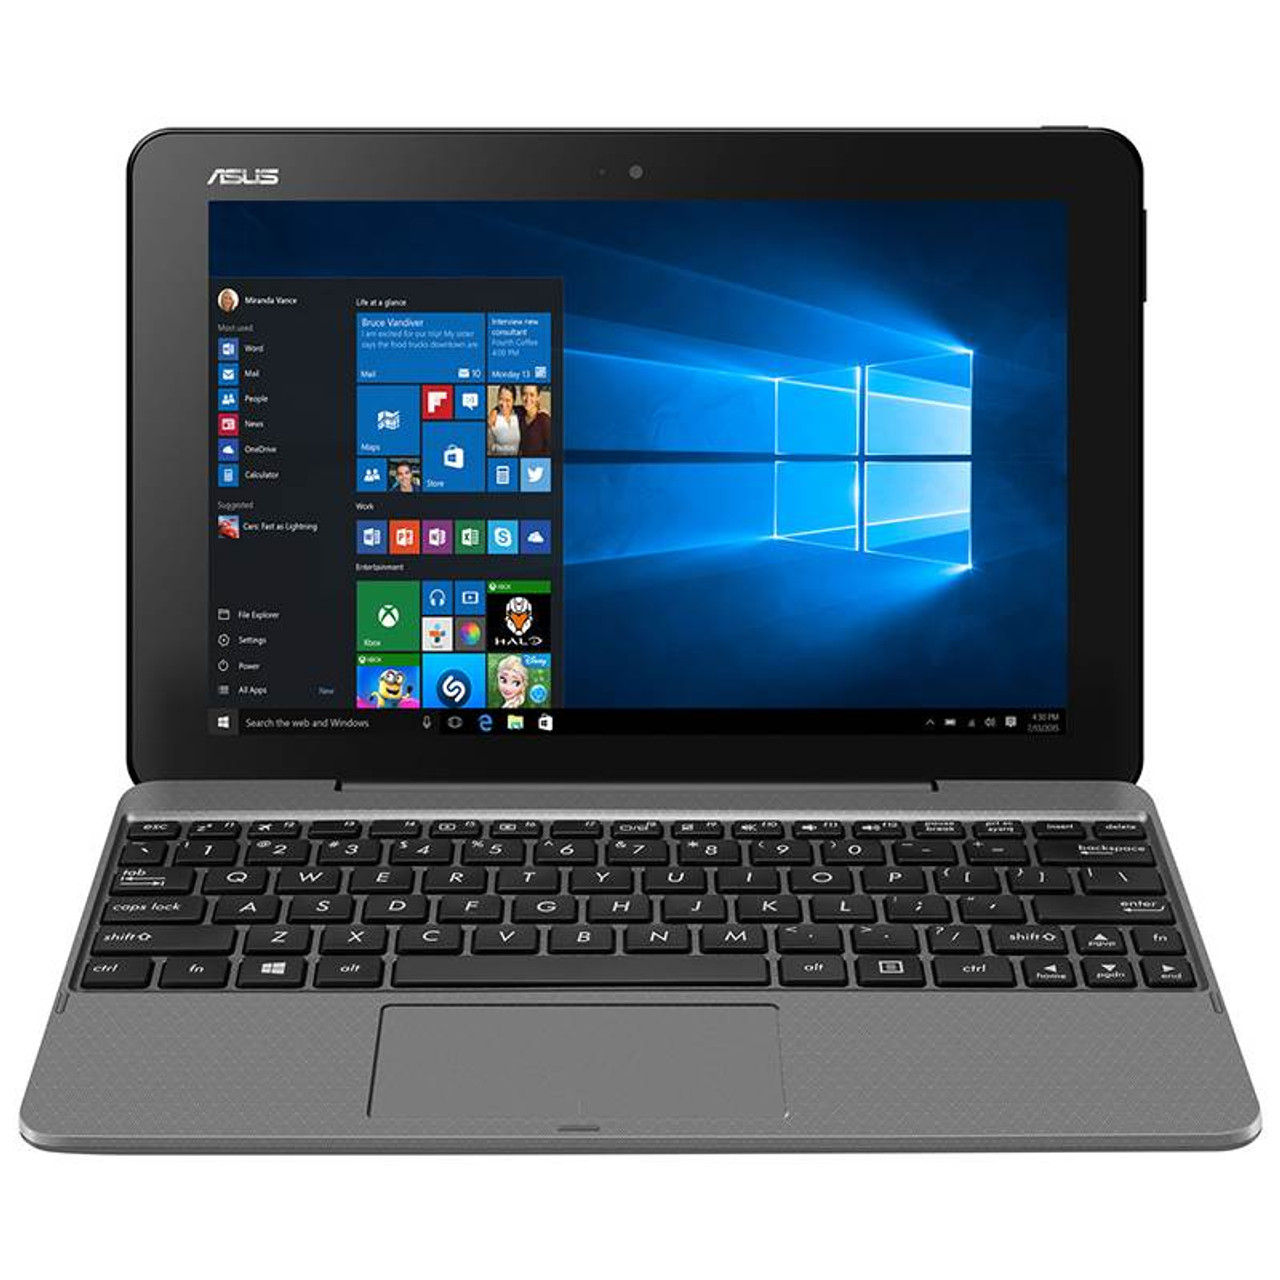 Image for Asus Transformer Book T101HA 10.1in Notebook Atom x5-Z8350 4GB 64GB Win10 Touch CX Computer Superstore